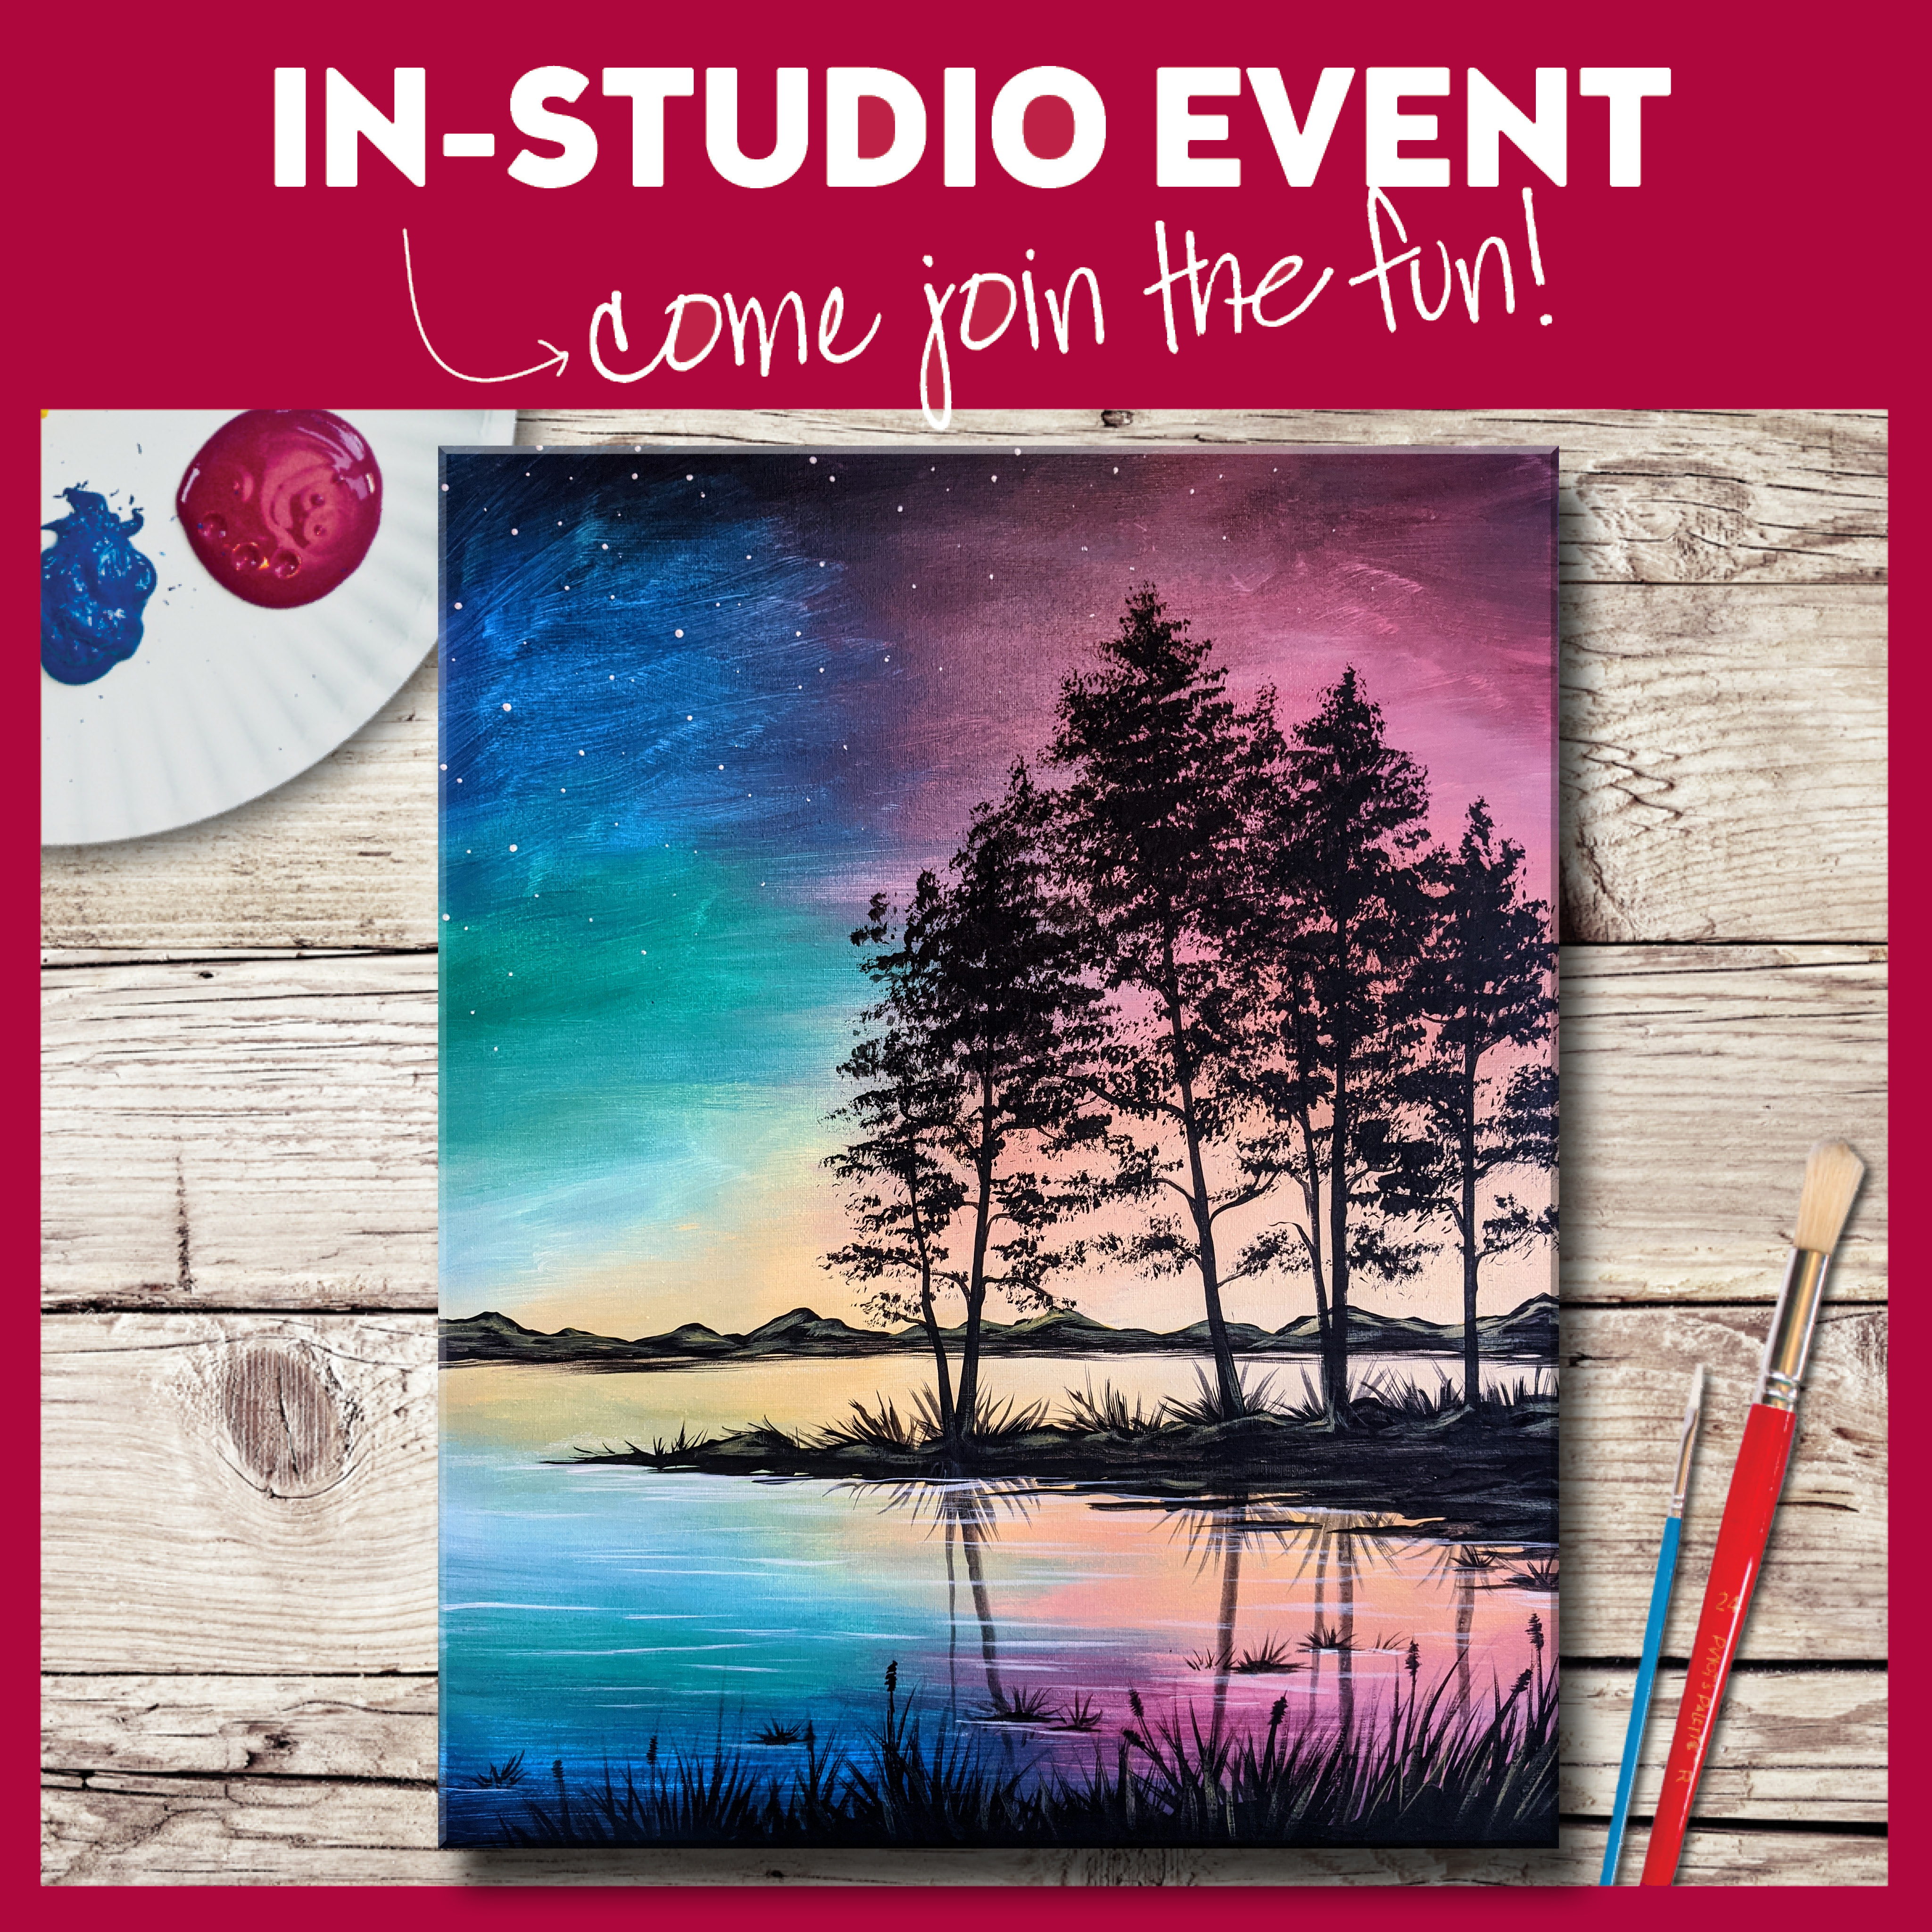 IN-STUDIO EVENT-A SERENE SUNSET